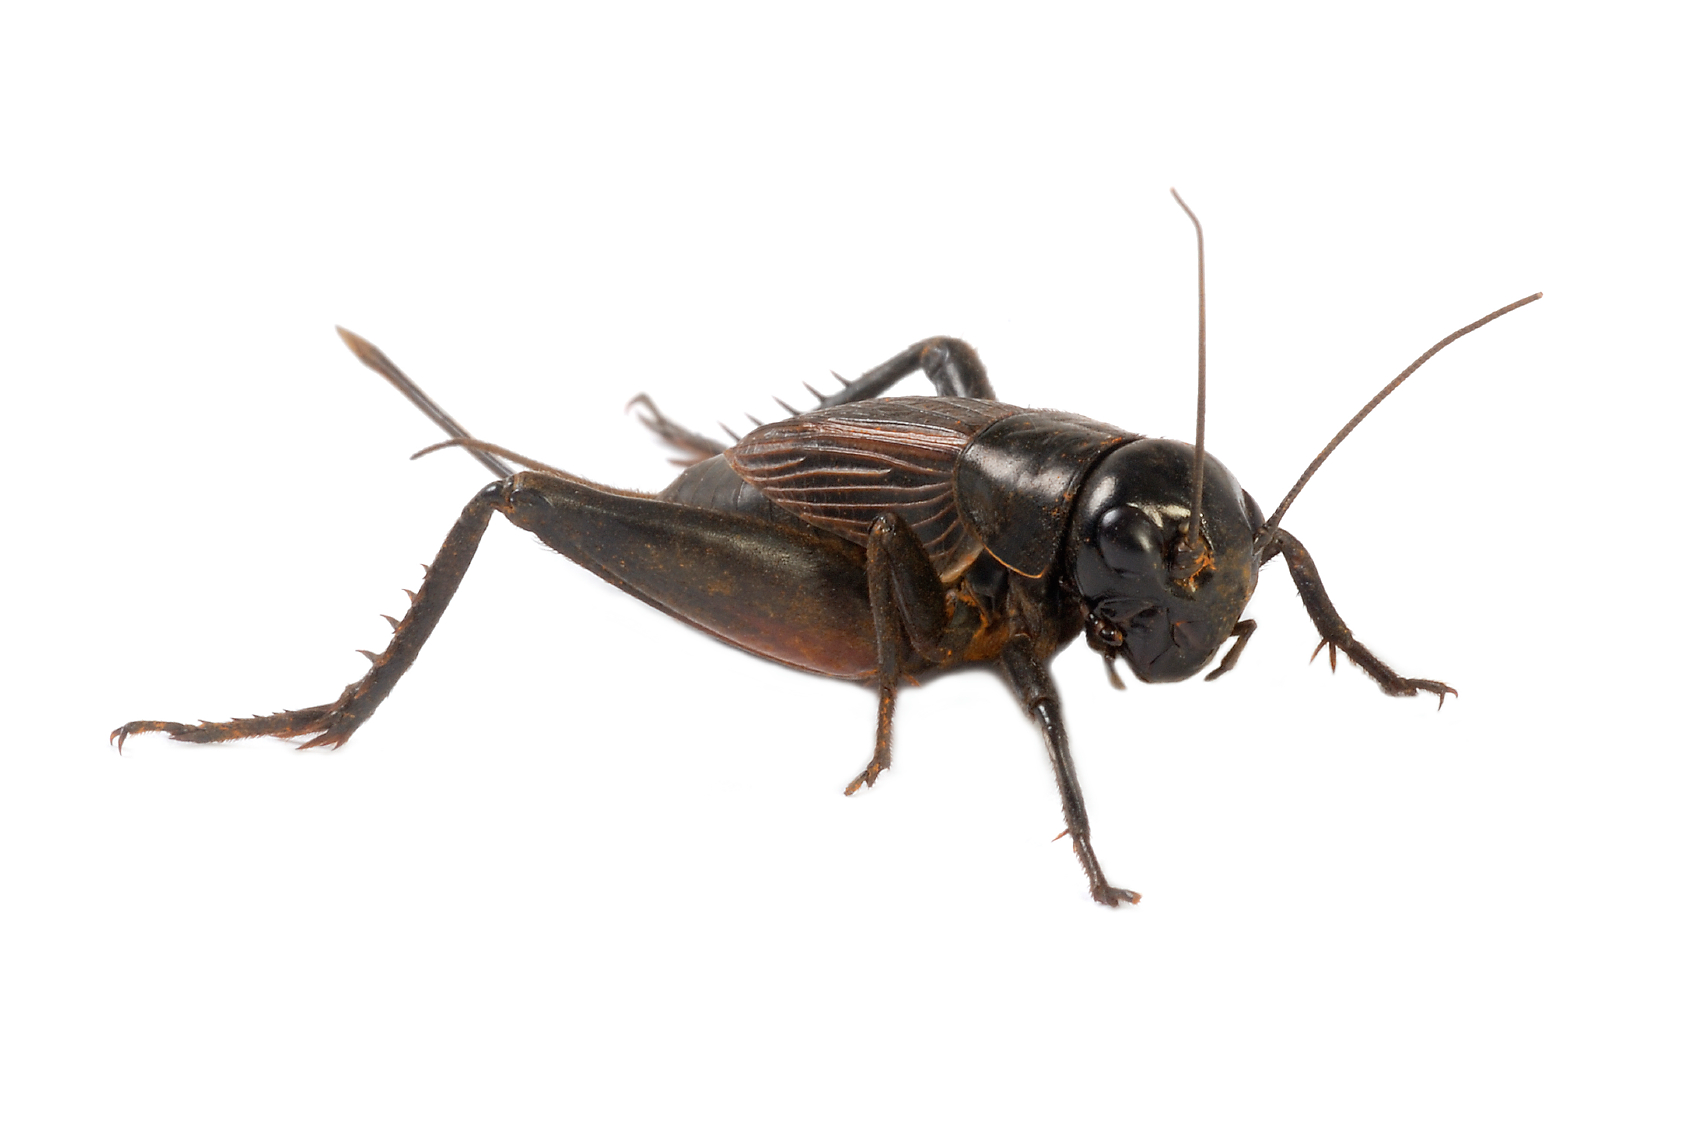 Cricket clipart brown cricket insect. Facts about crickets terro